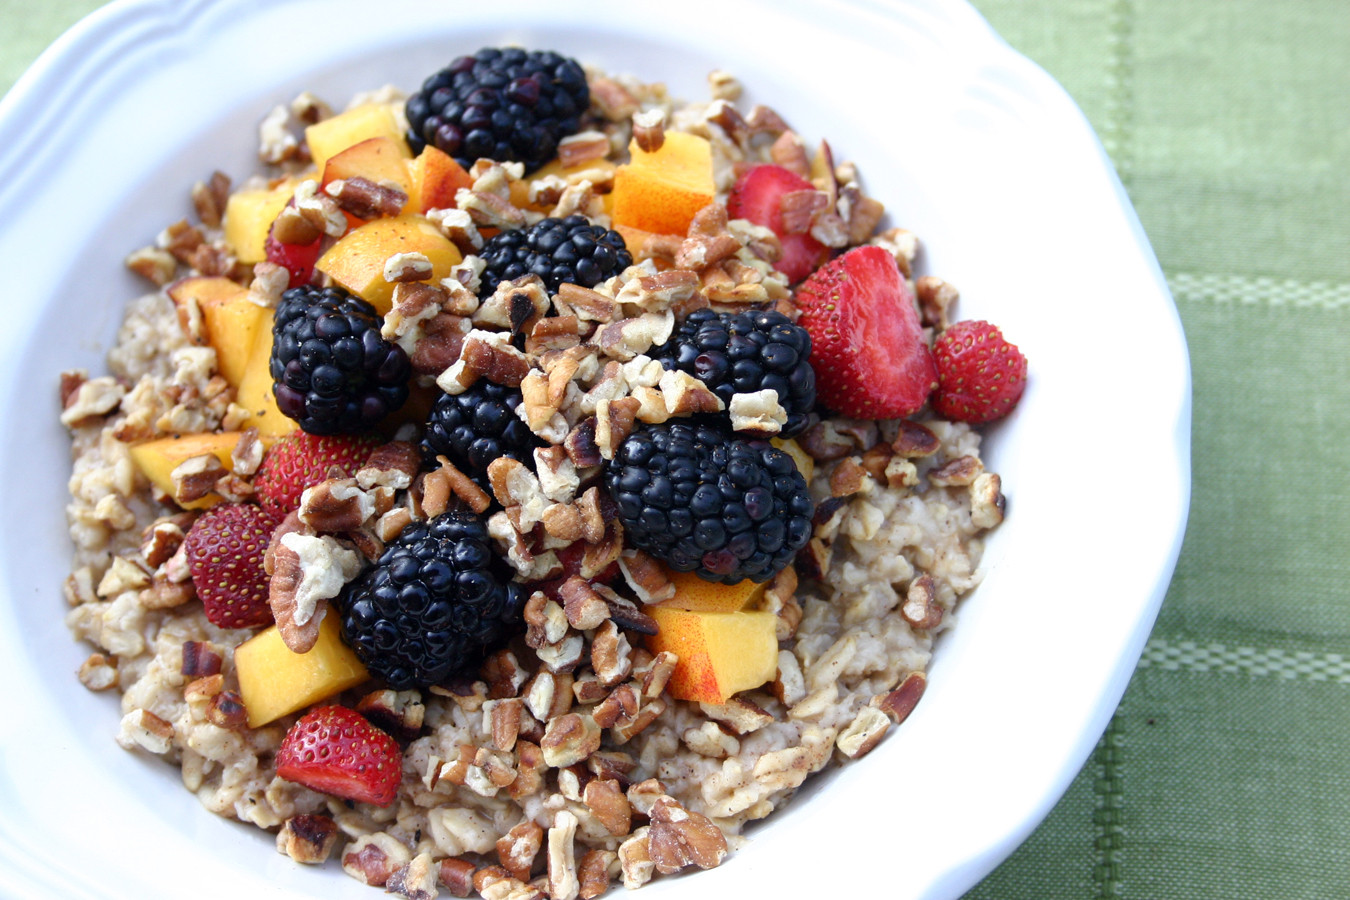 Healthy Oats Breakfast  Balanced Weekend Breakfasts Yum